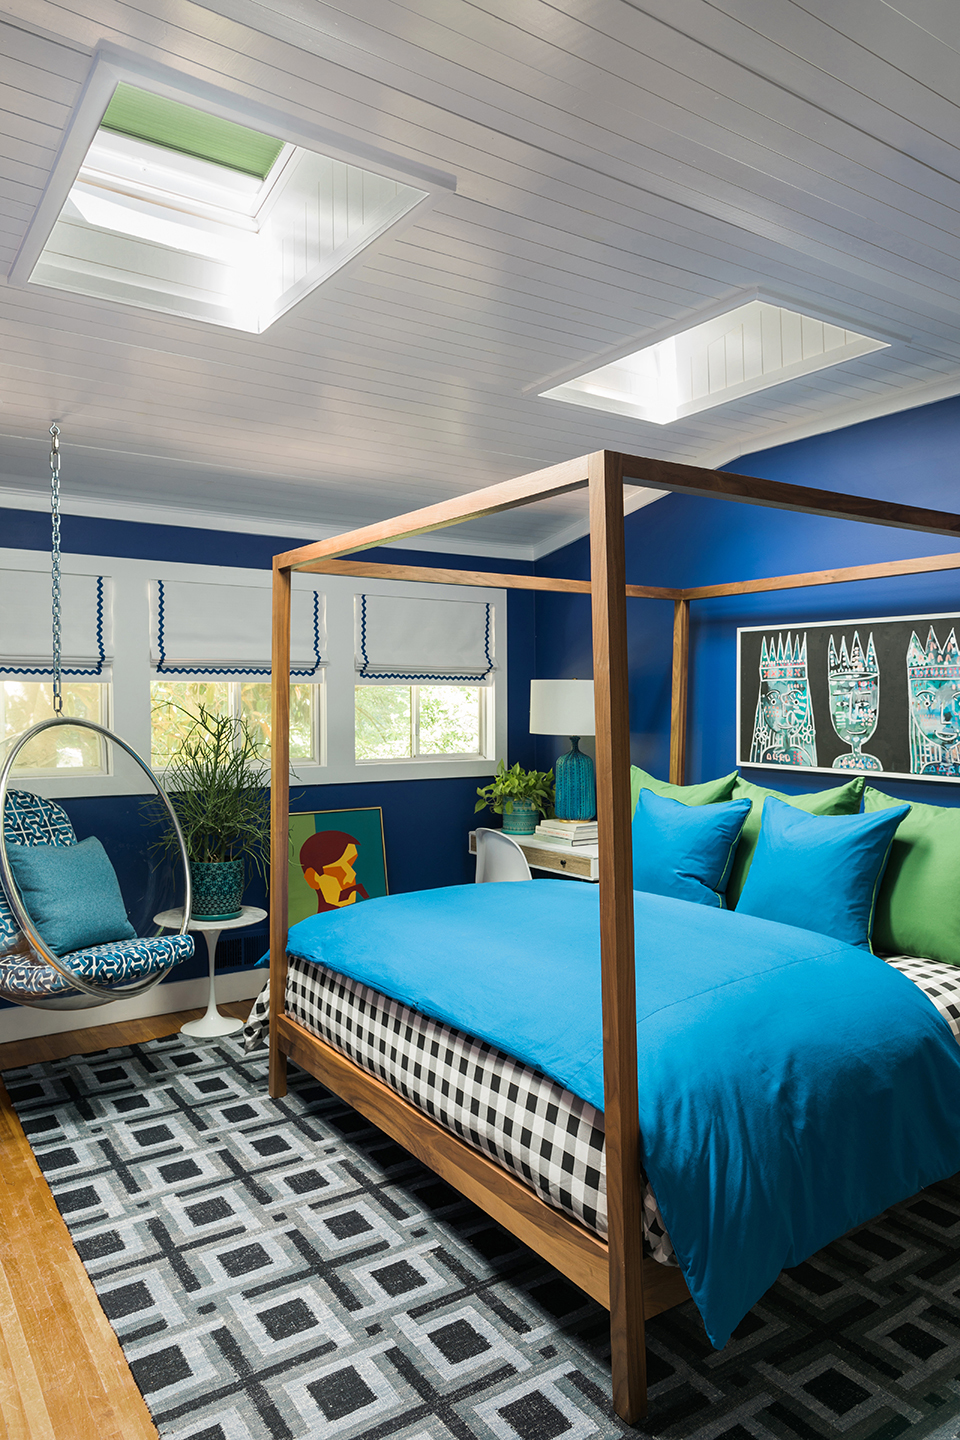 A blue and green bedroom